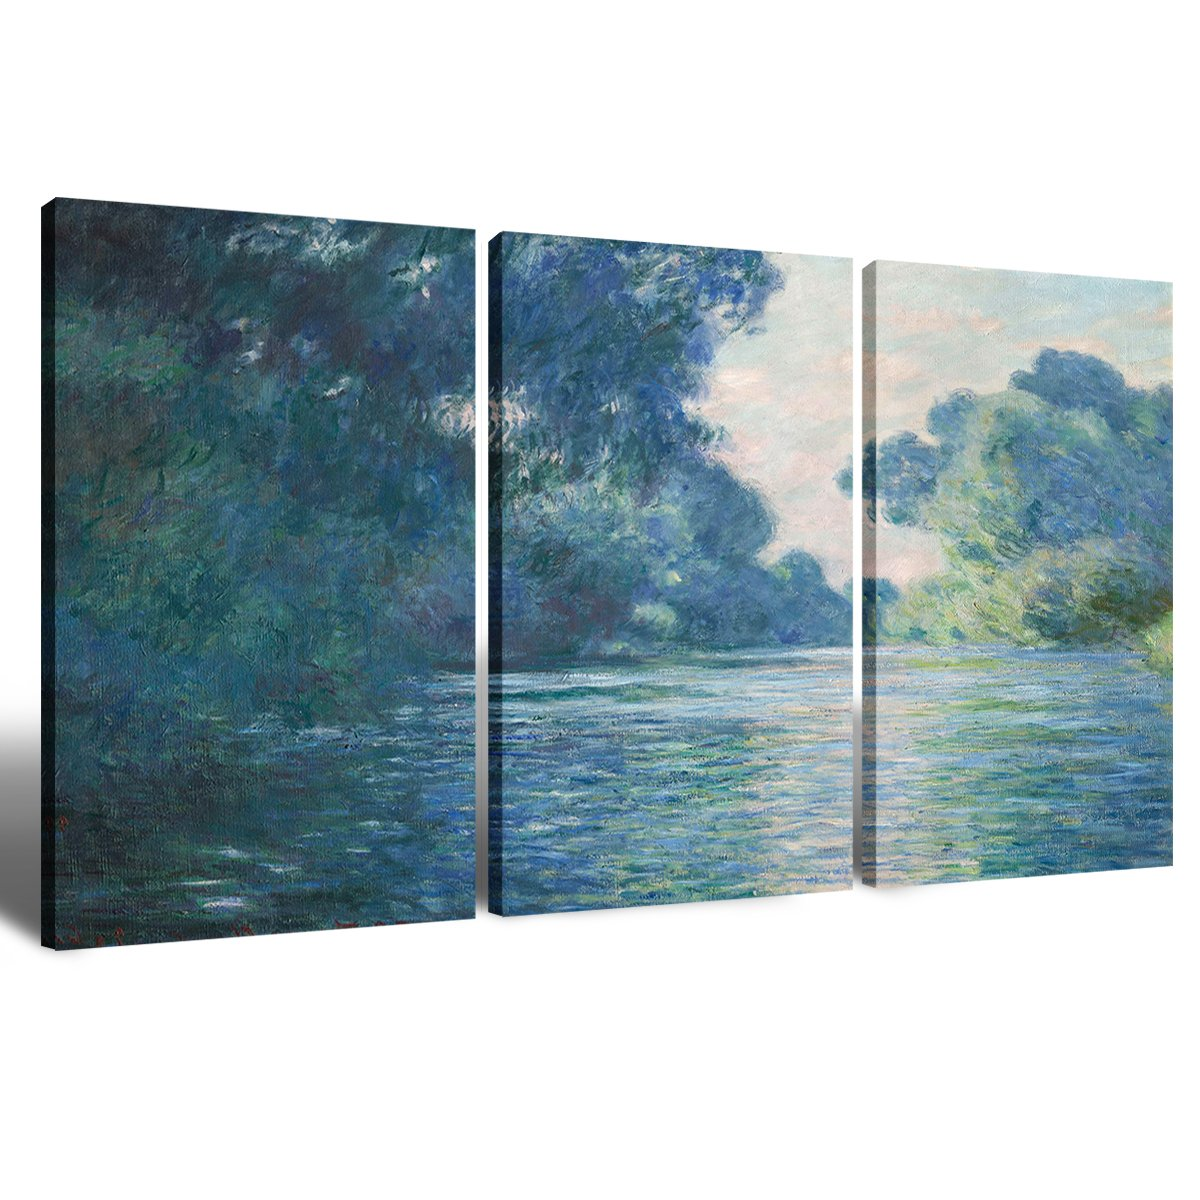 Canvas Wall Art Decorations Painting for Living Room Home Decor Elegant Vintage Claude Monet Hand-painted Artwork Water Lilies 1914 3 piece Picture Framed Wall Art House Decor Ready to Hang 16x24 Inch